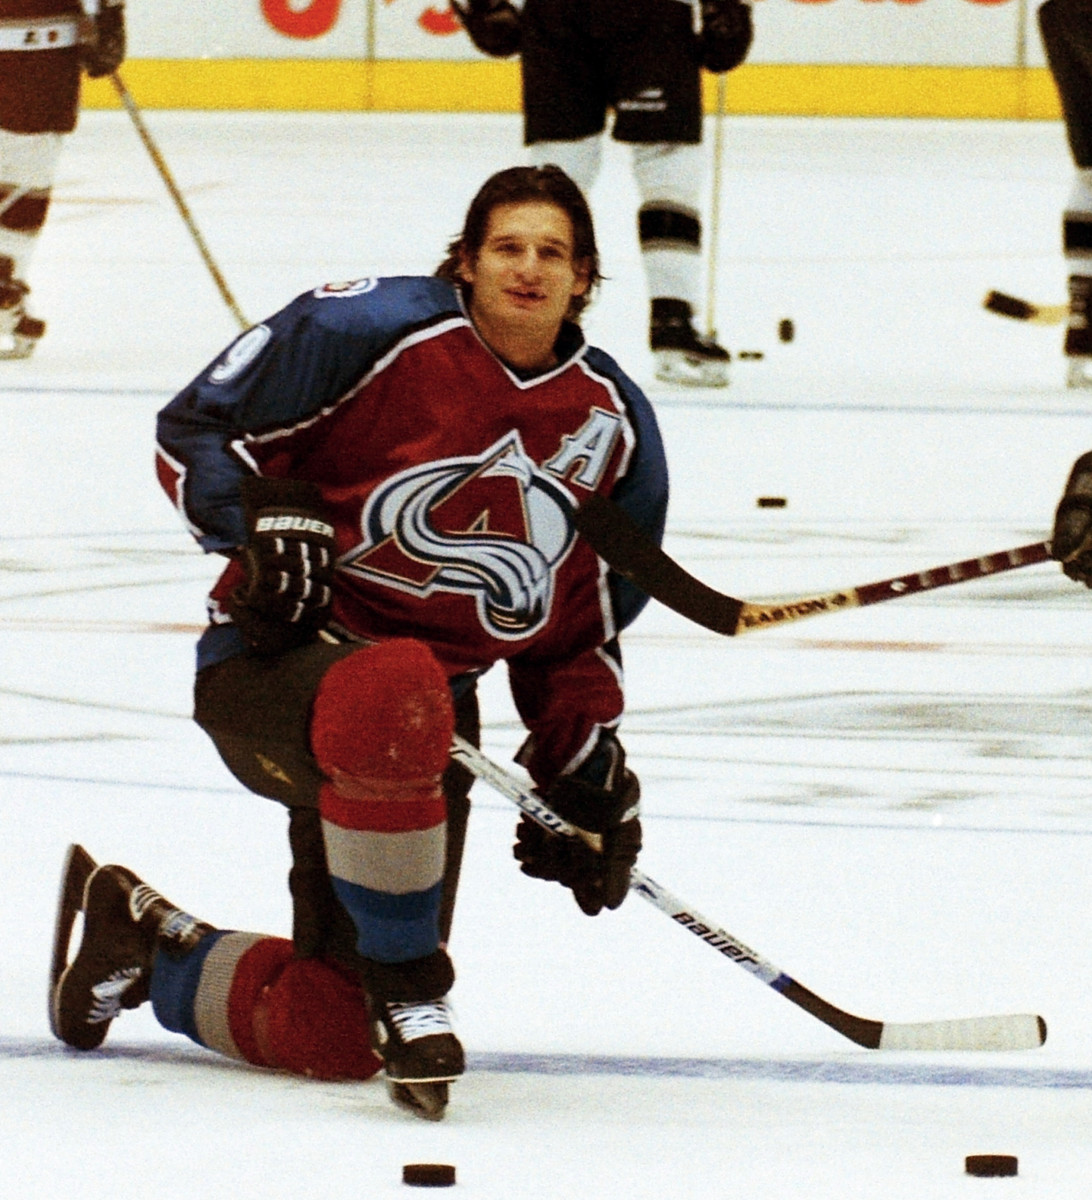 Stanley Cup champion Mike Ricci as a member of the Colorado Avalanche